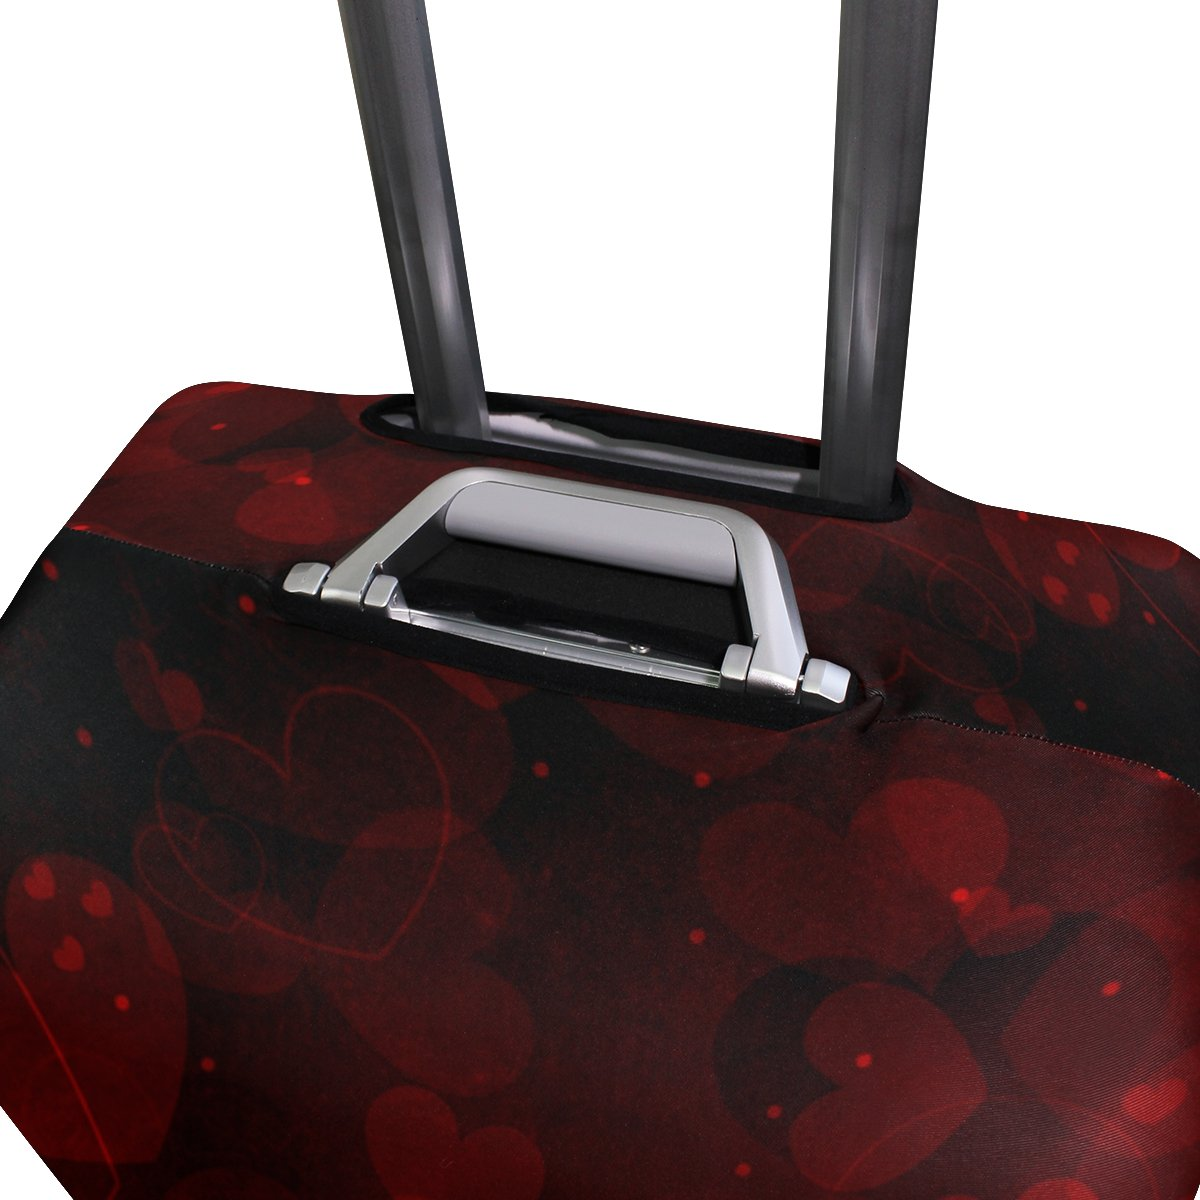 ALAZA Hearts Valentine's Day Wedding Luggage Cover Fits 30-32 Inch Suitcase Spandex Travel Protector XL by ALAZA (Image #3)